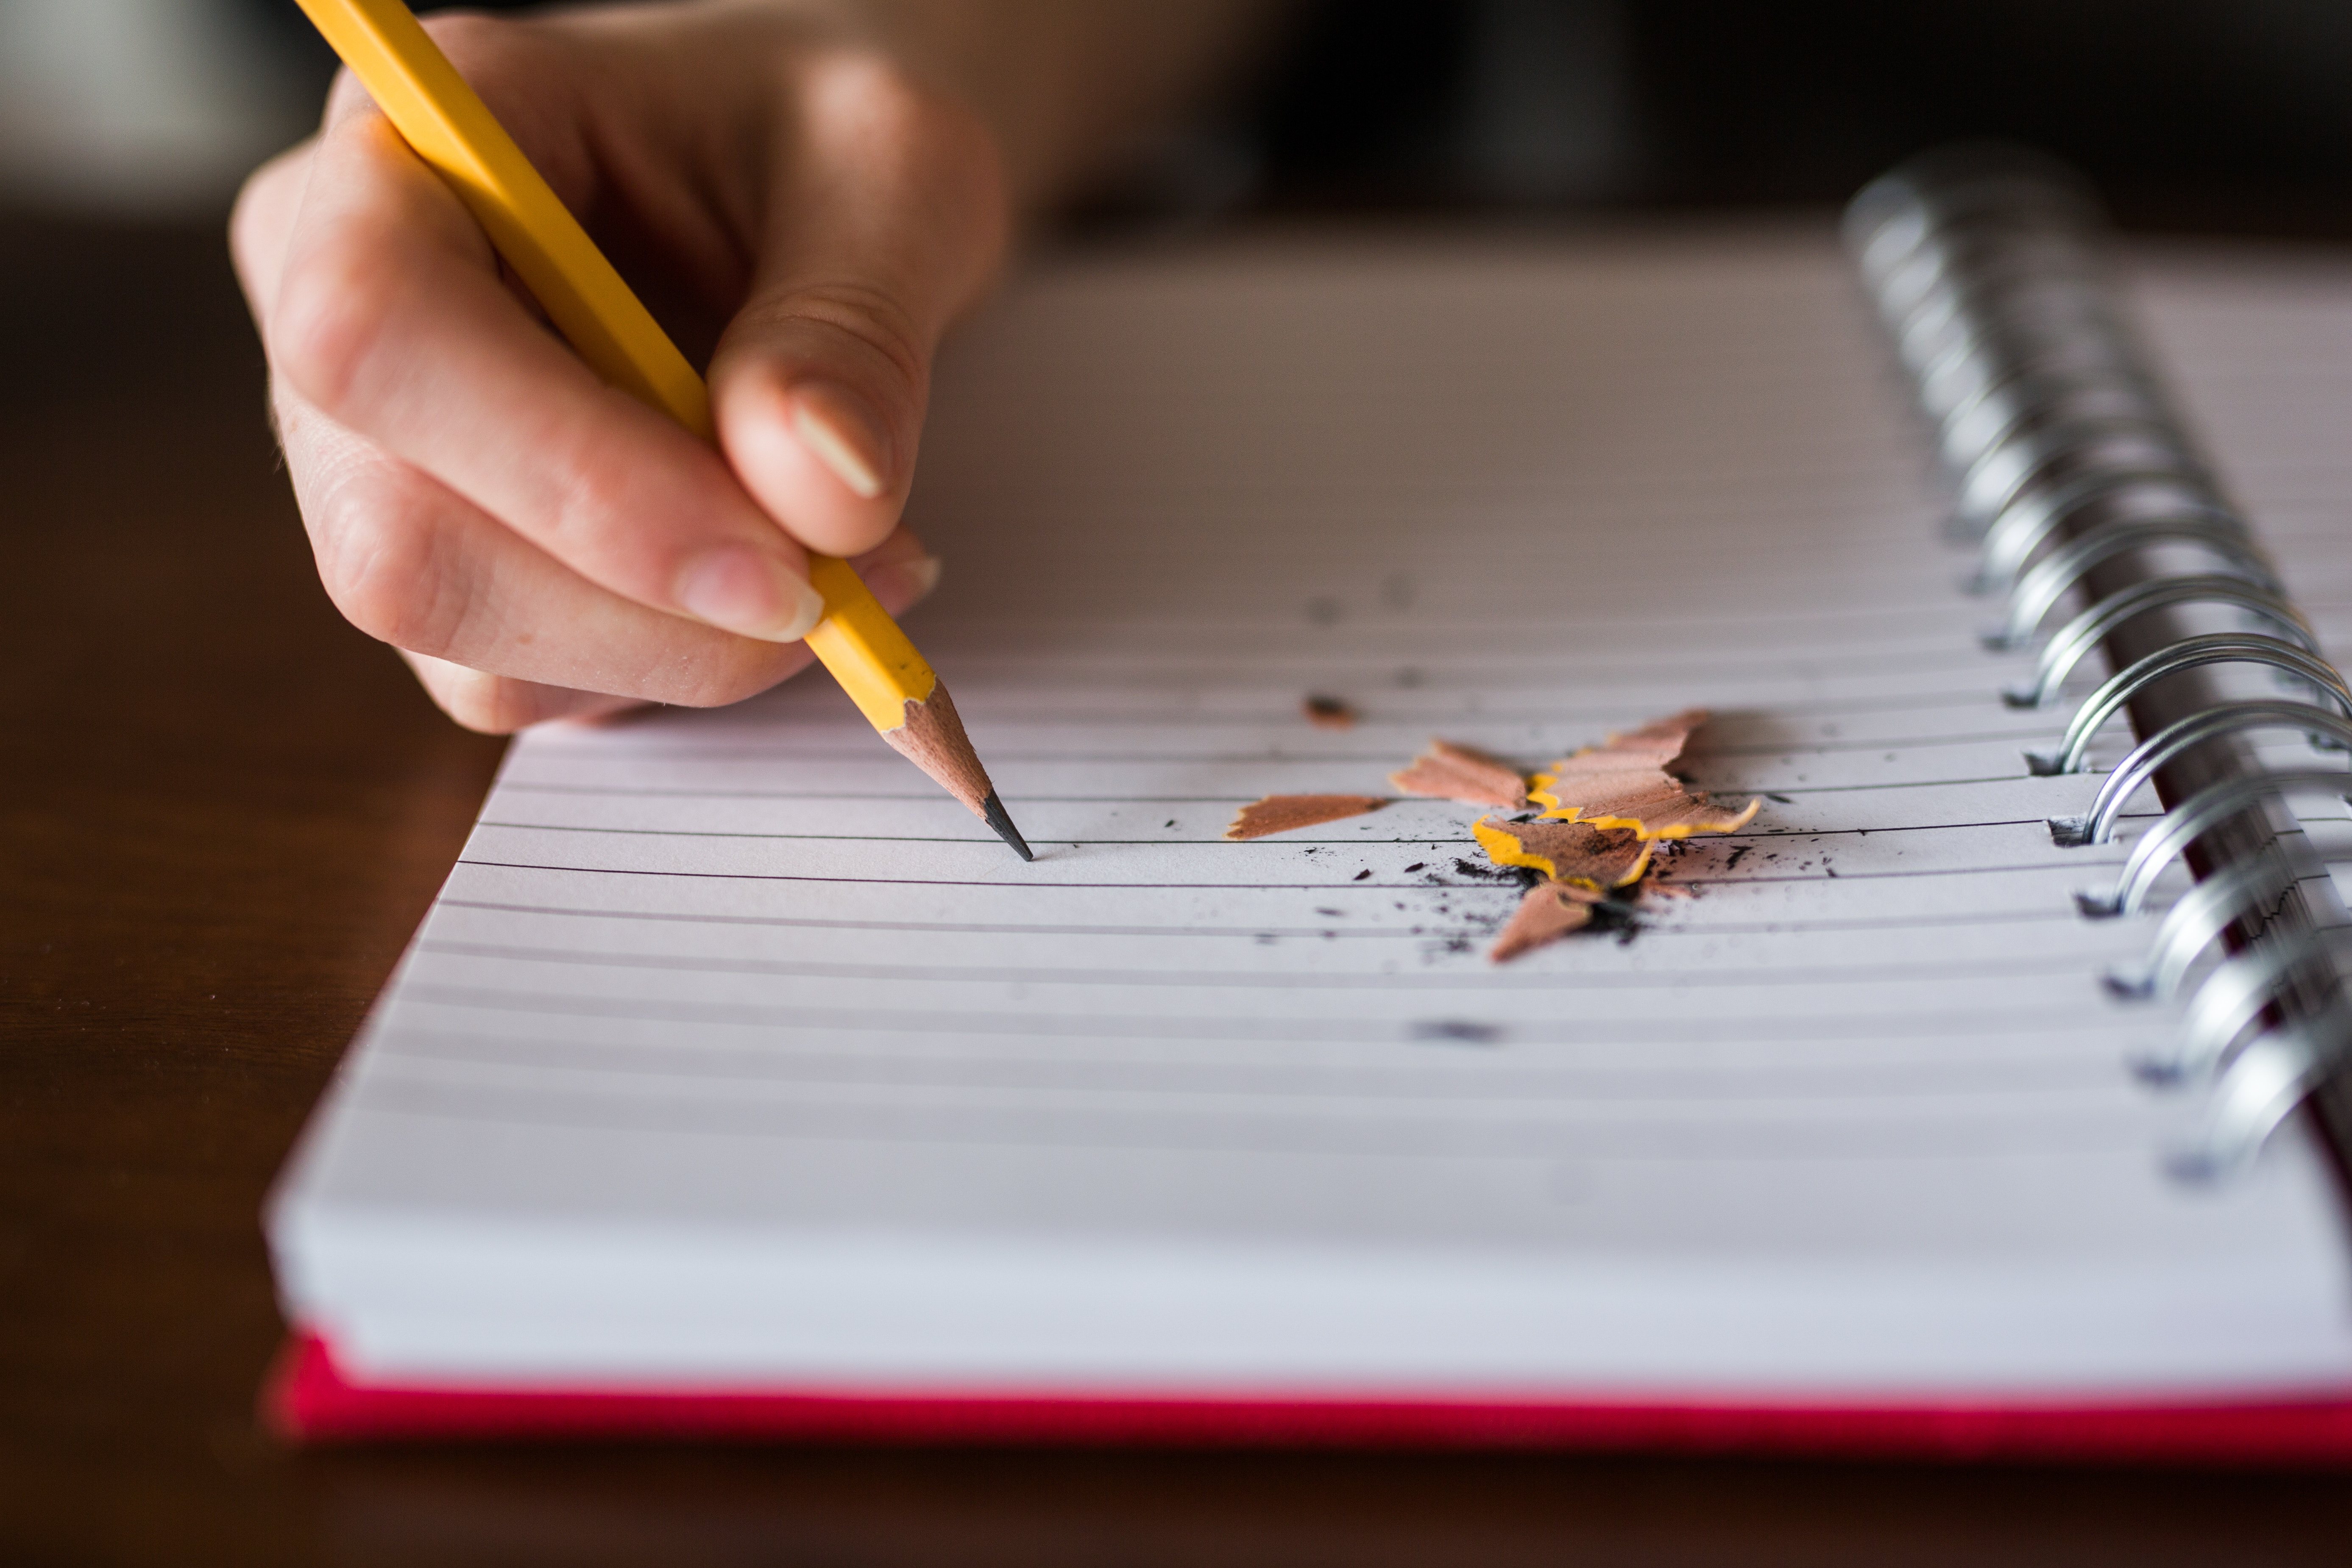 WRITING IN JOURNAL